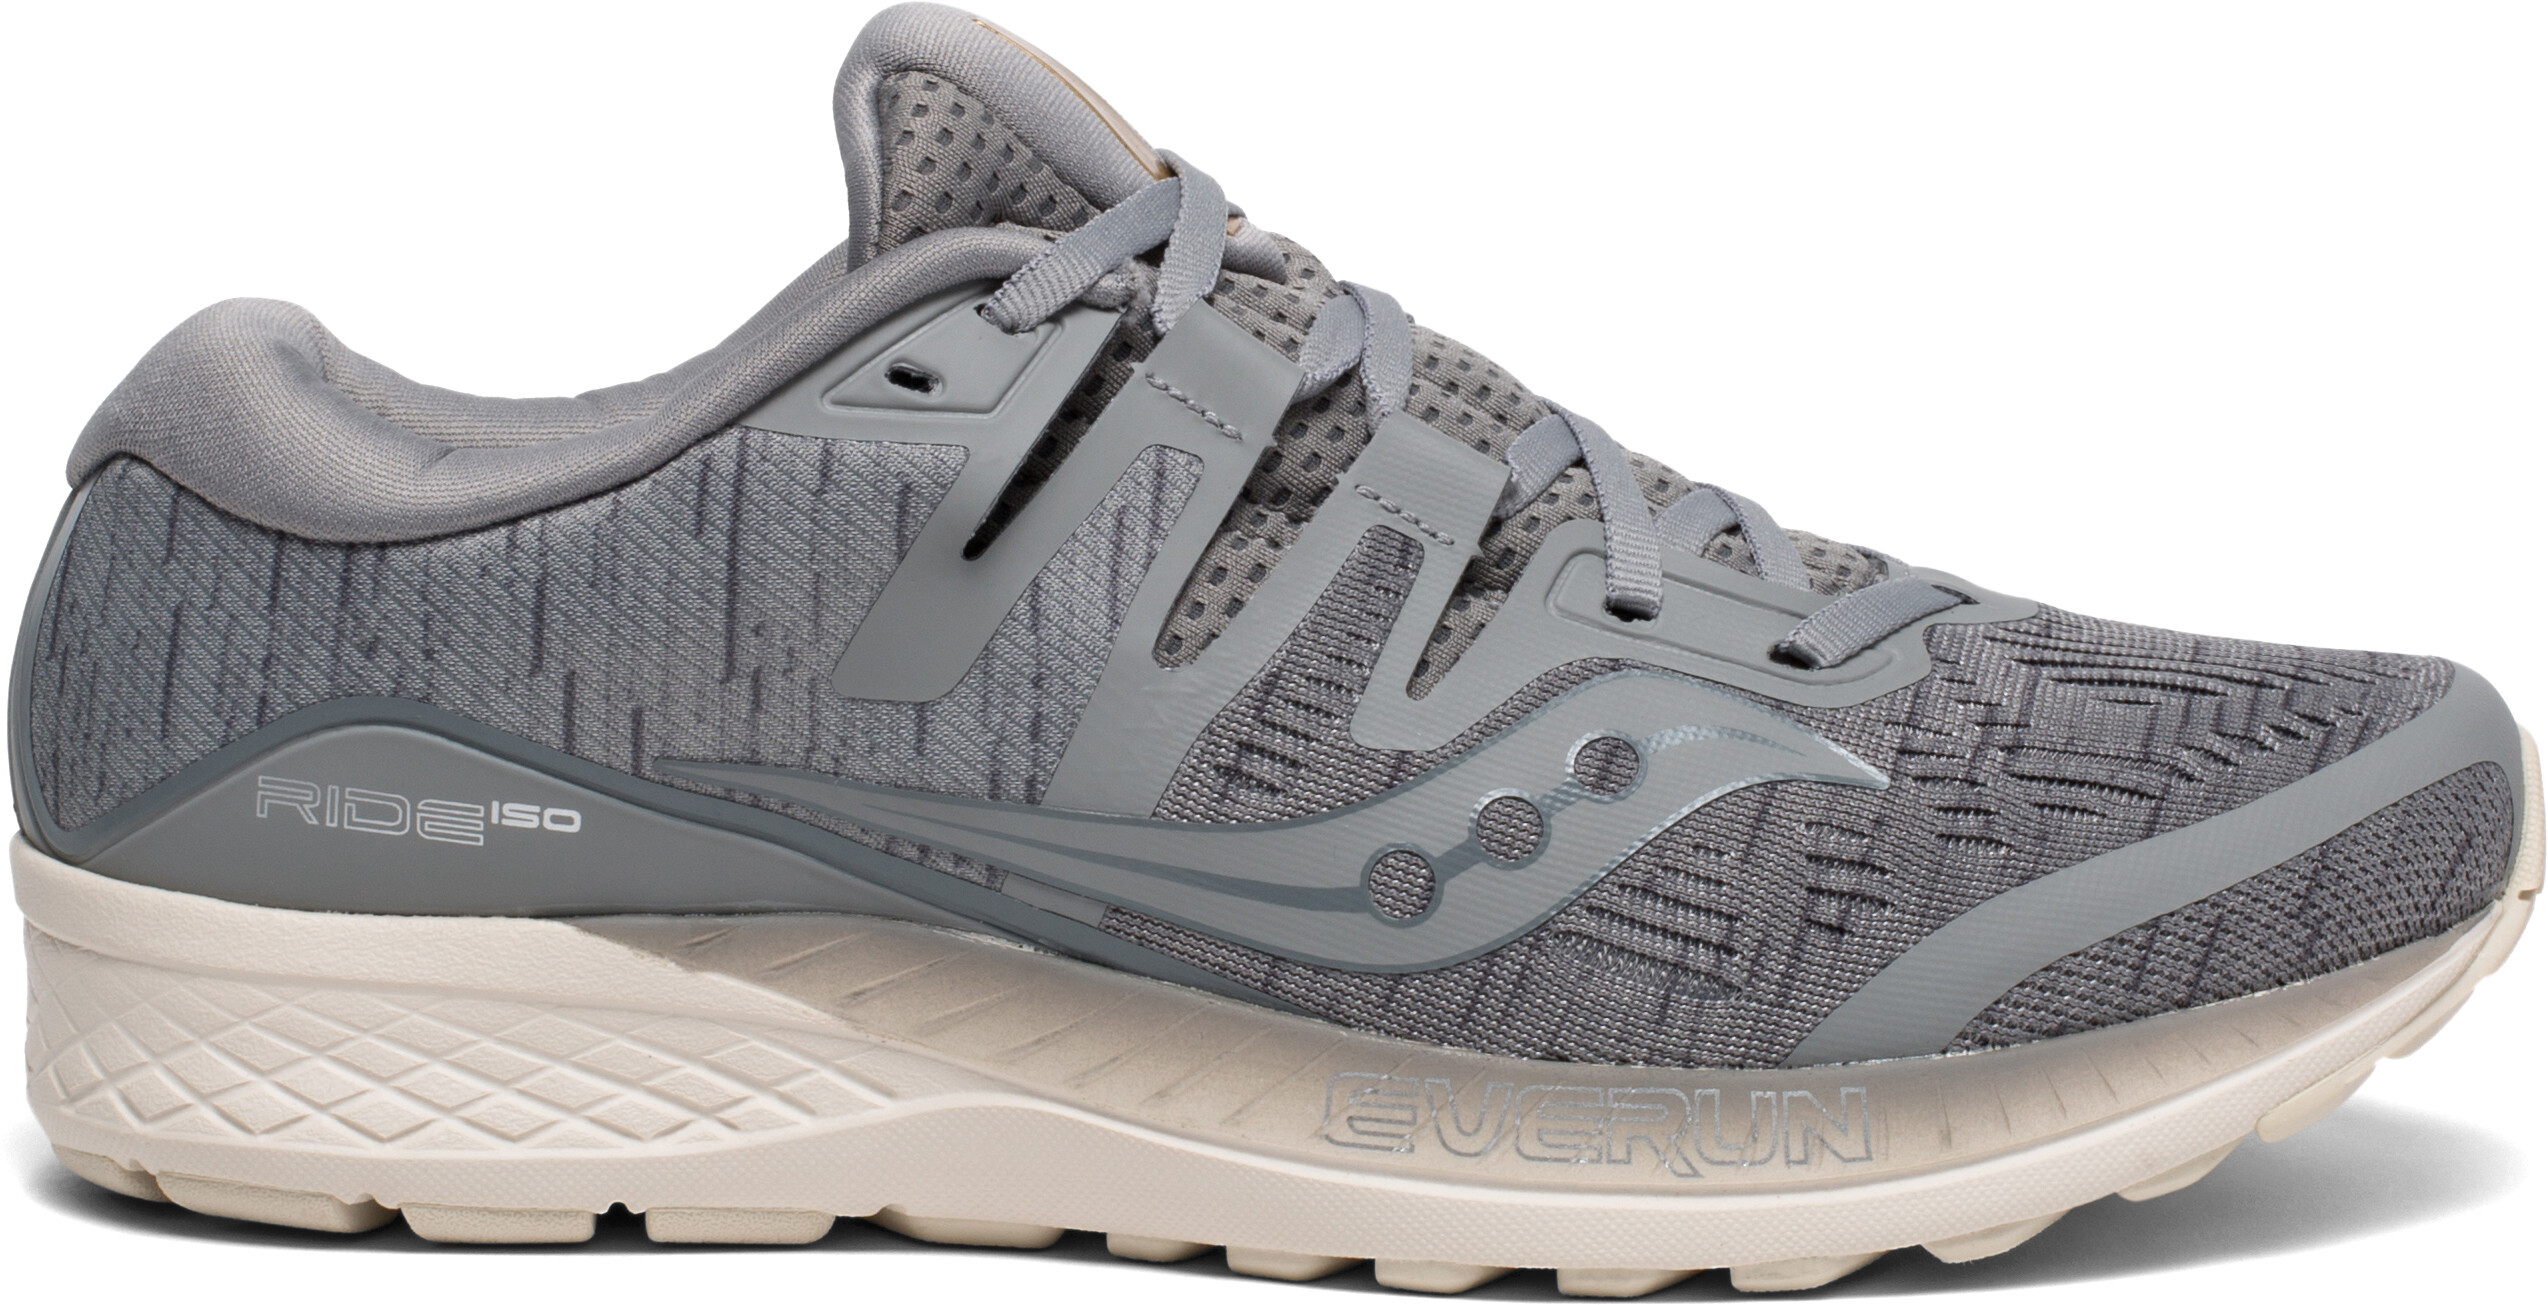 28fe4dd24be saucony Ride ISO - Chaussures running Homme - gris - Boutique de ...